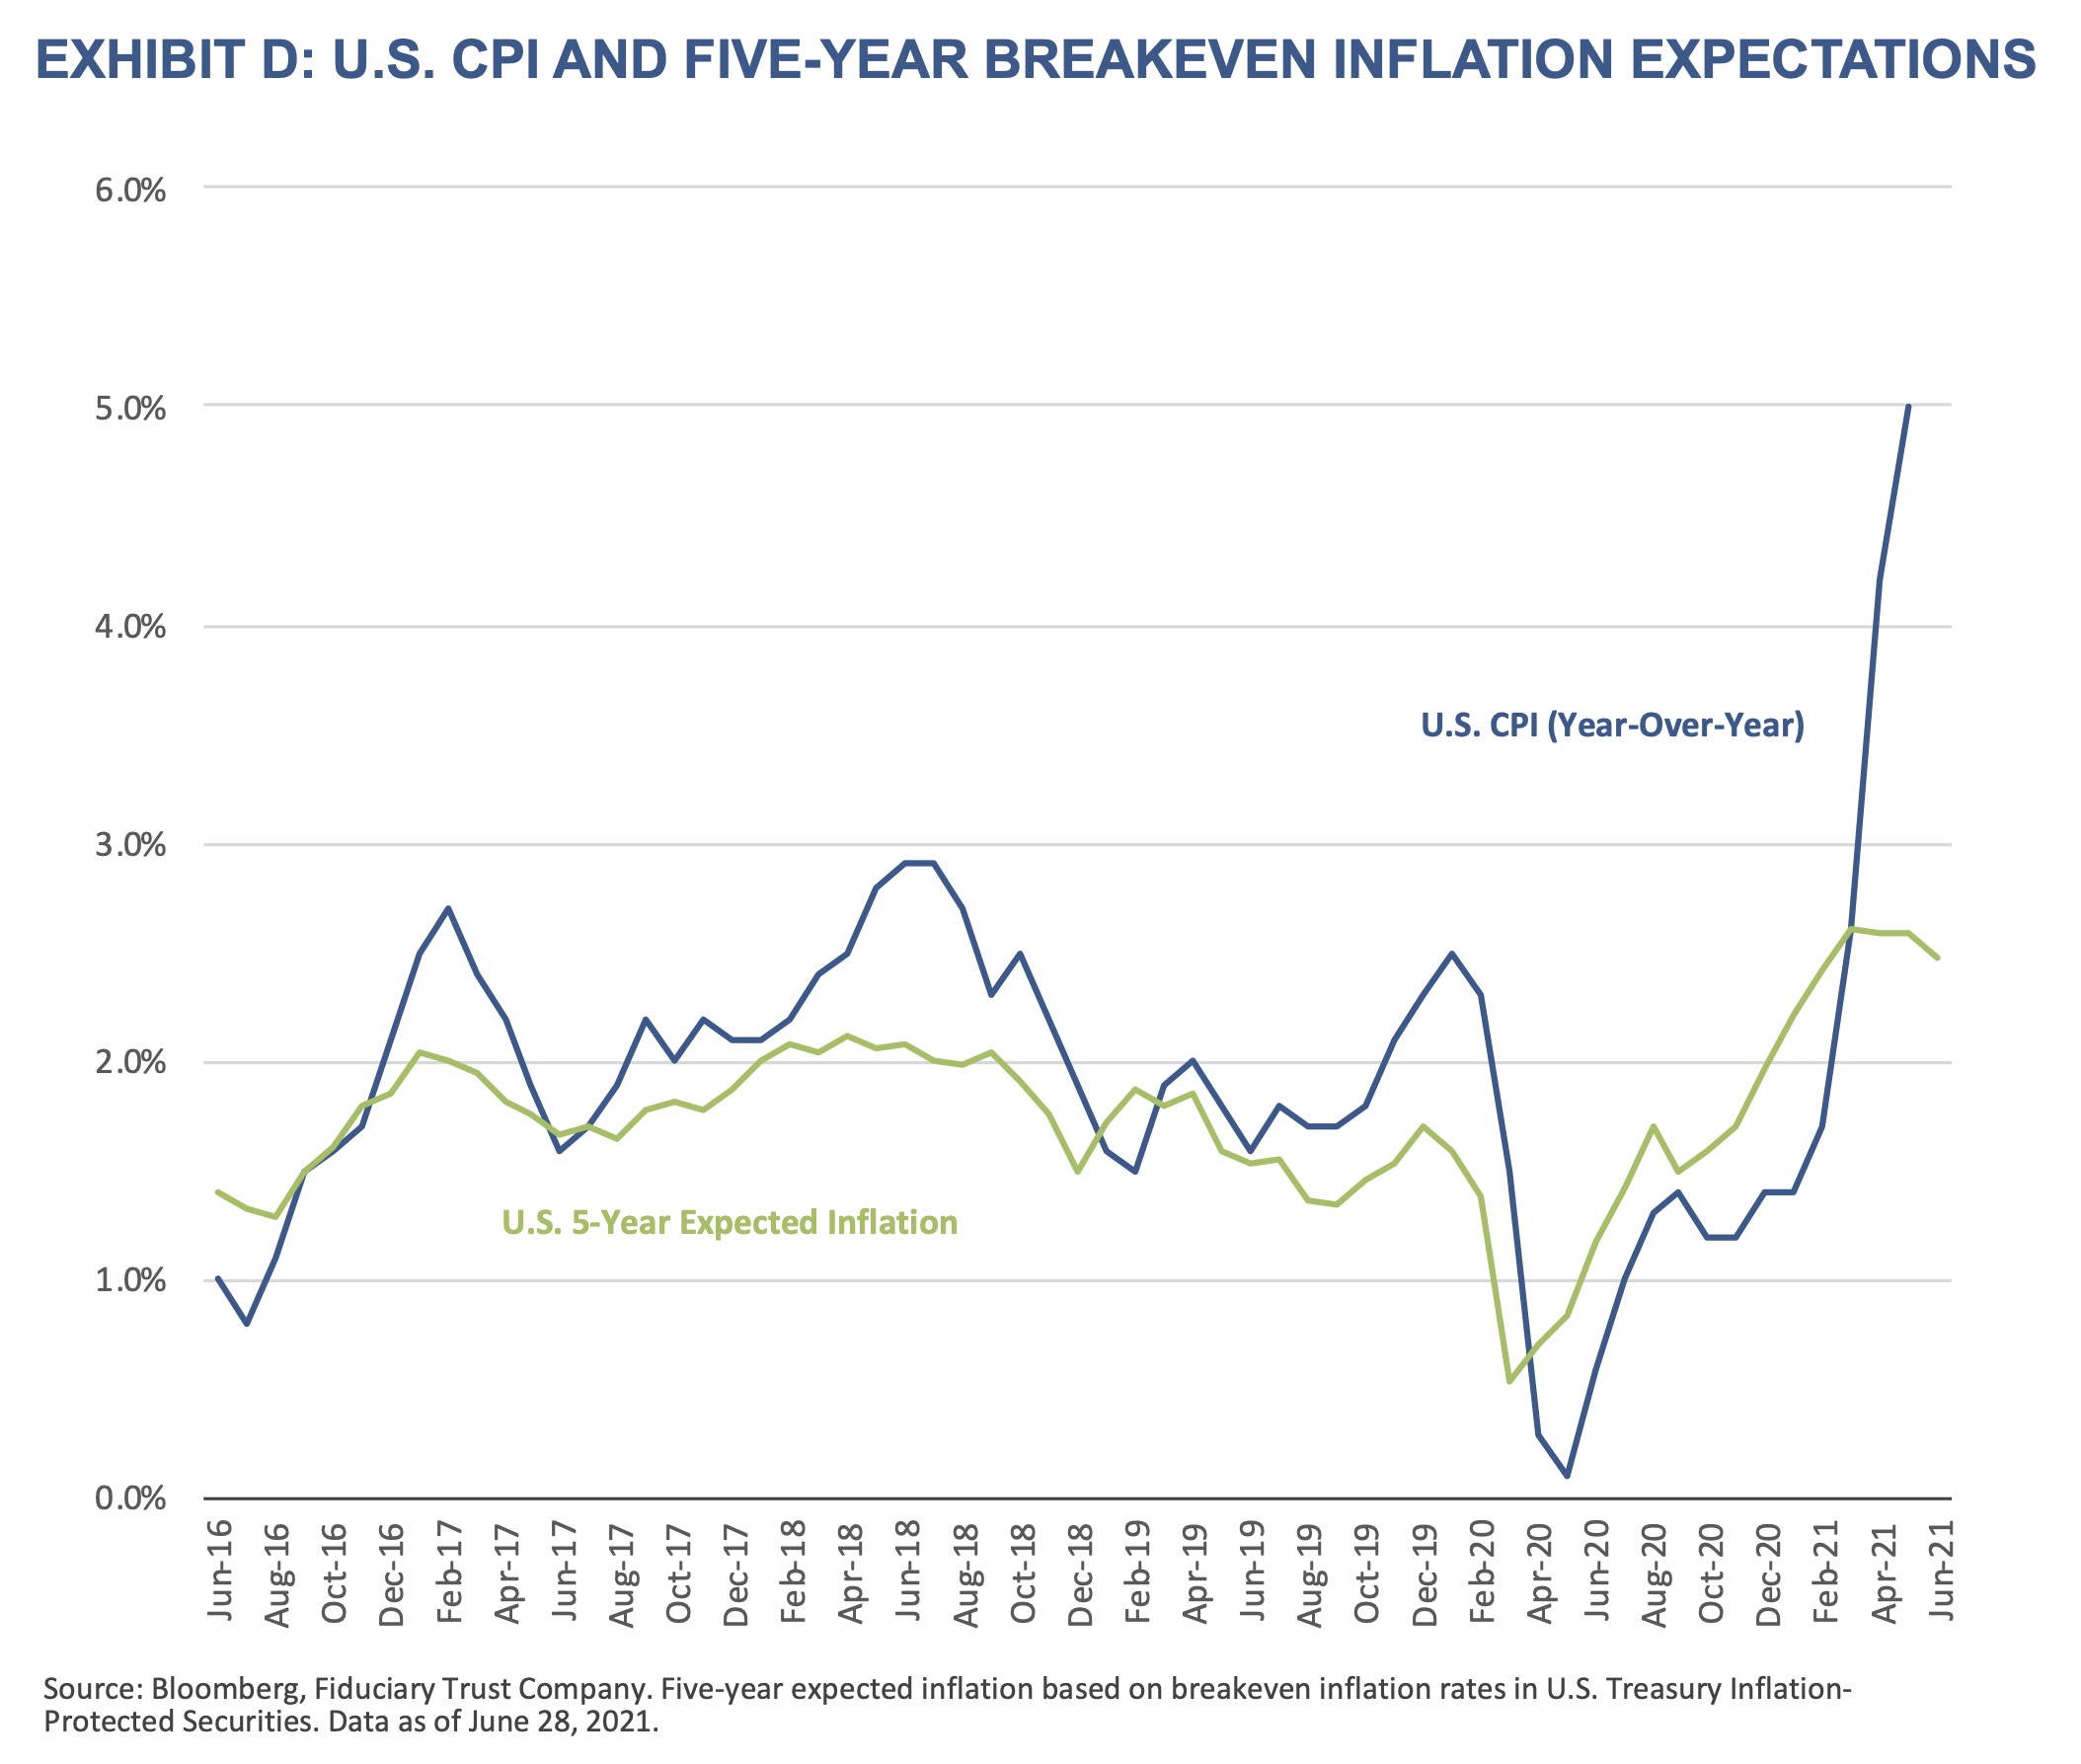 2021 Q3 Outlook - Exhibit D - U.S. CPI and Five-Year Breakeven Inflation Expectations